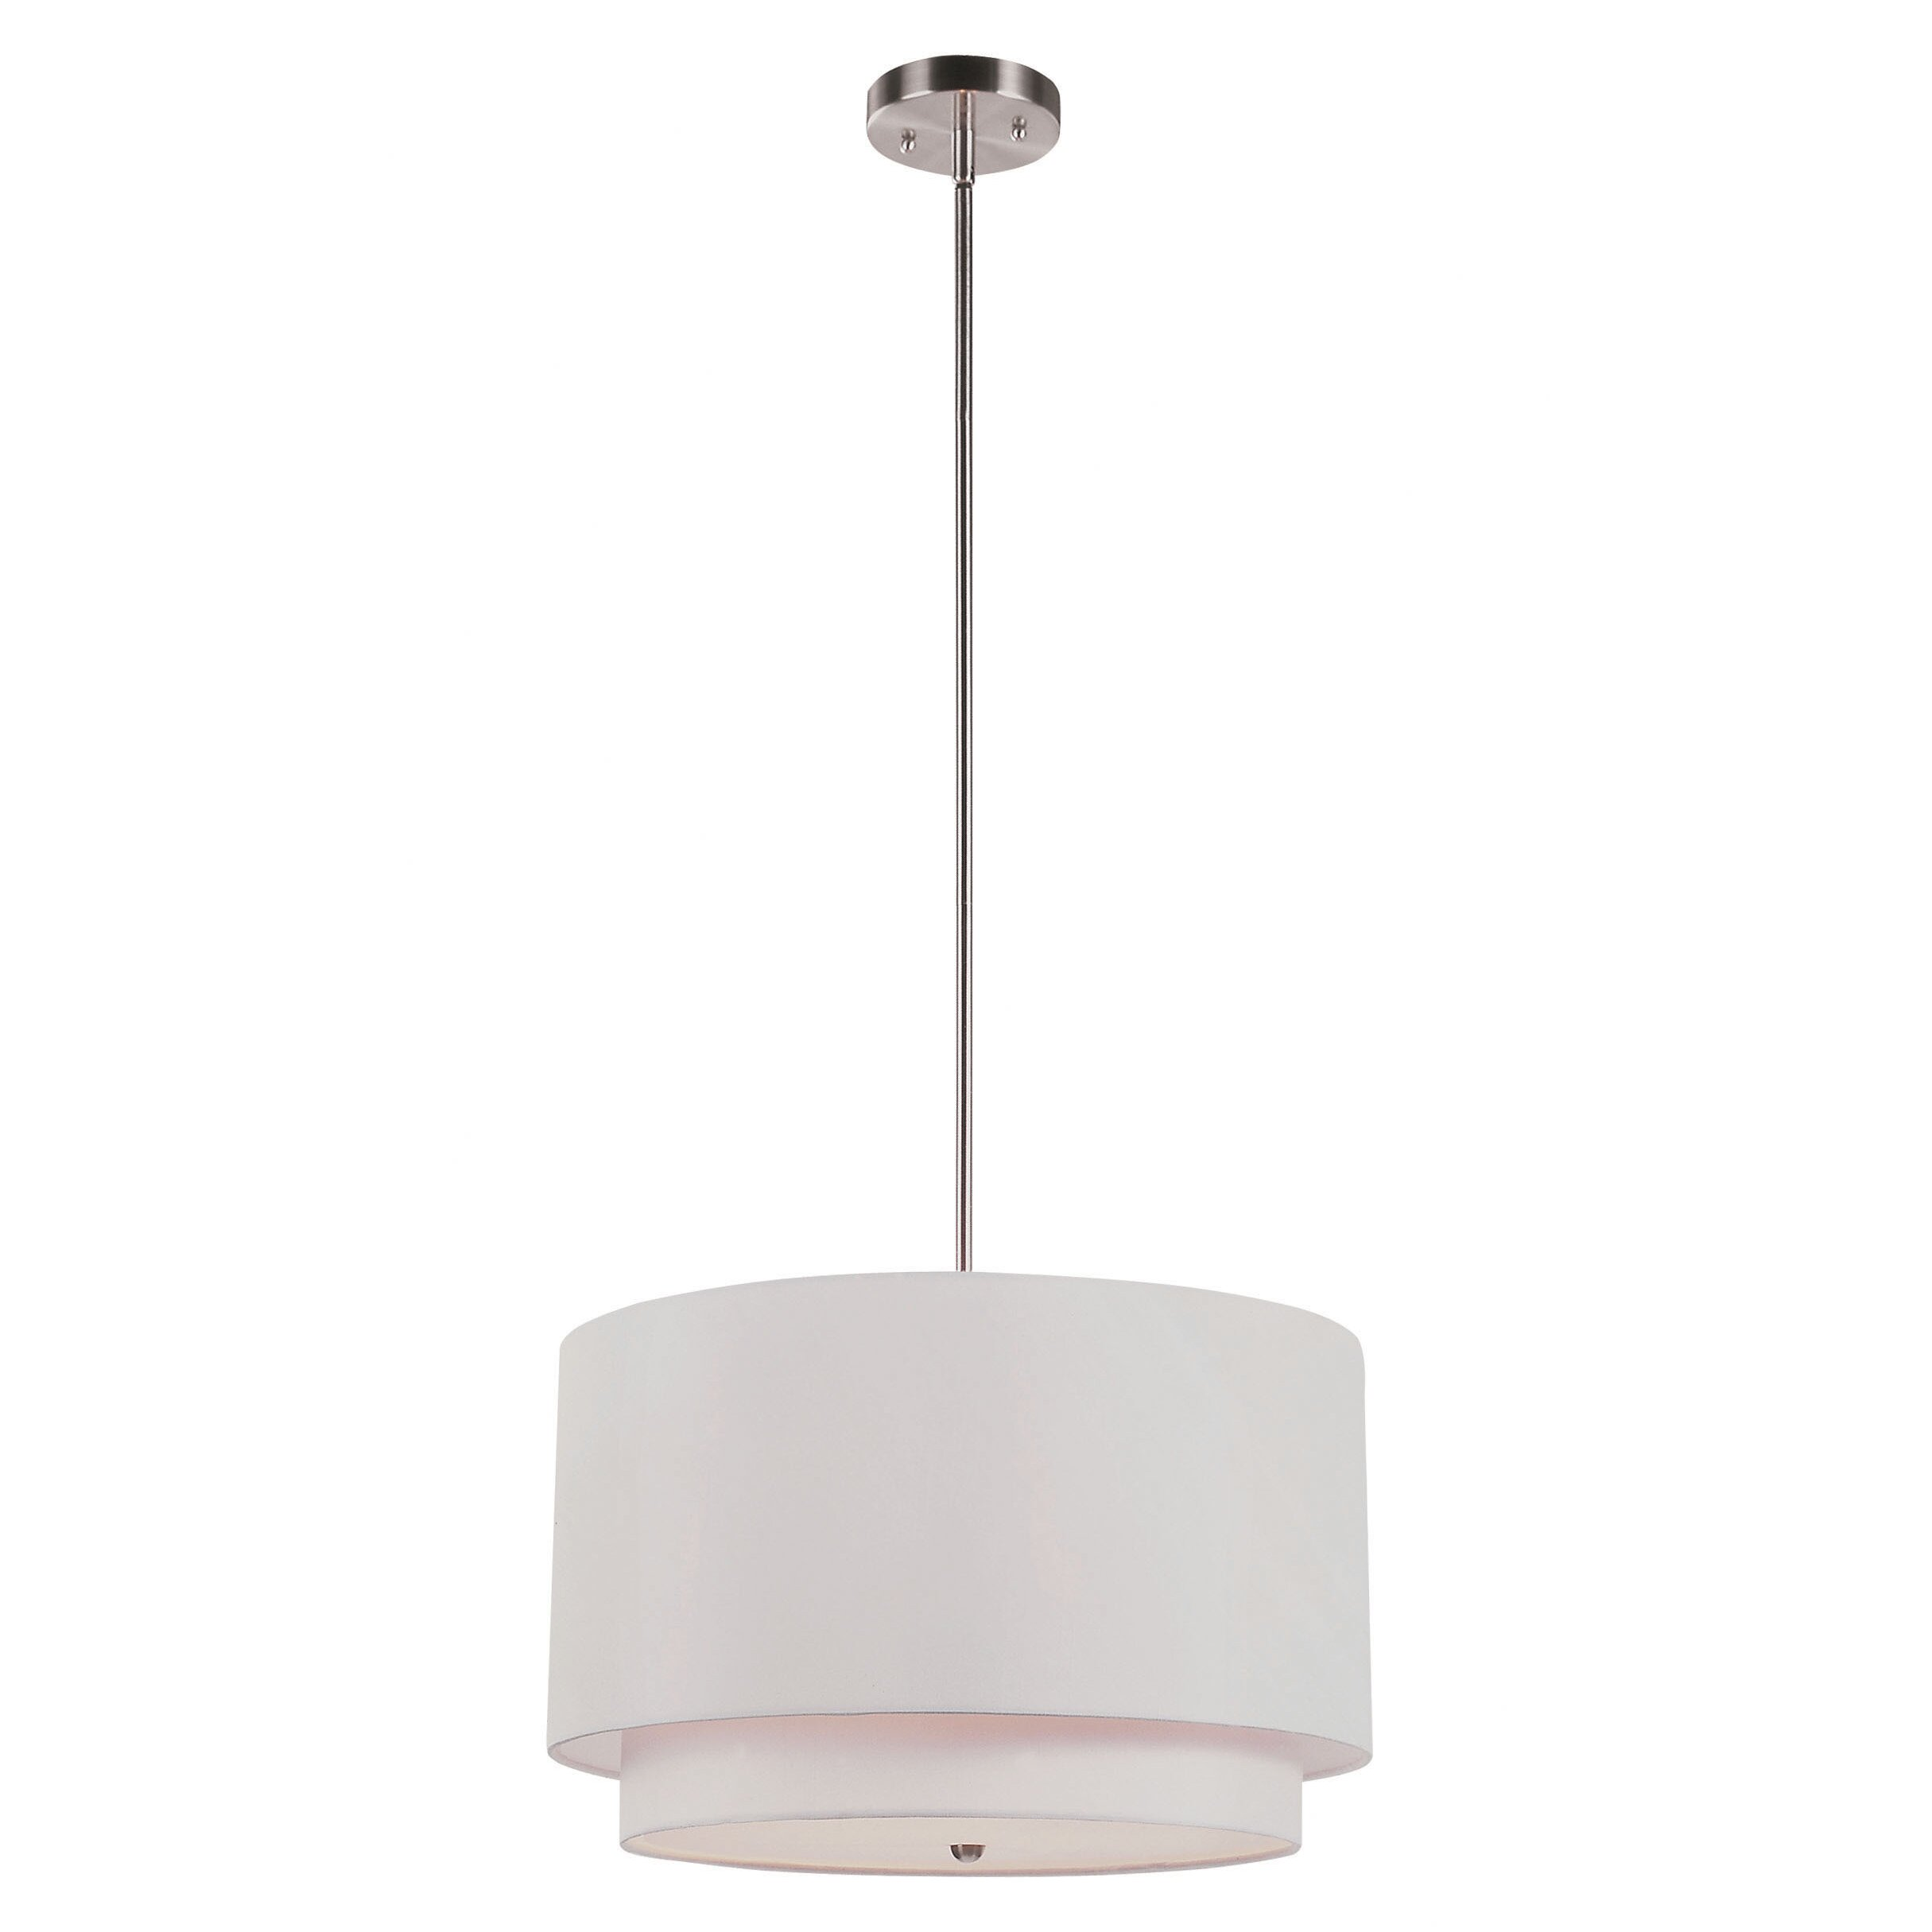 transglobe lighting 3 light drum pendant chandeliers pendants wayfair drum lighting